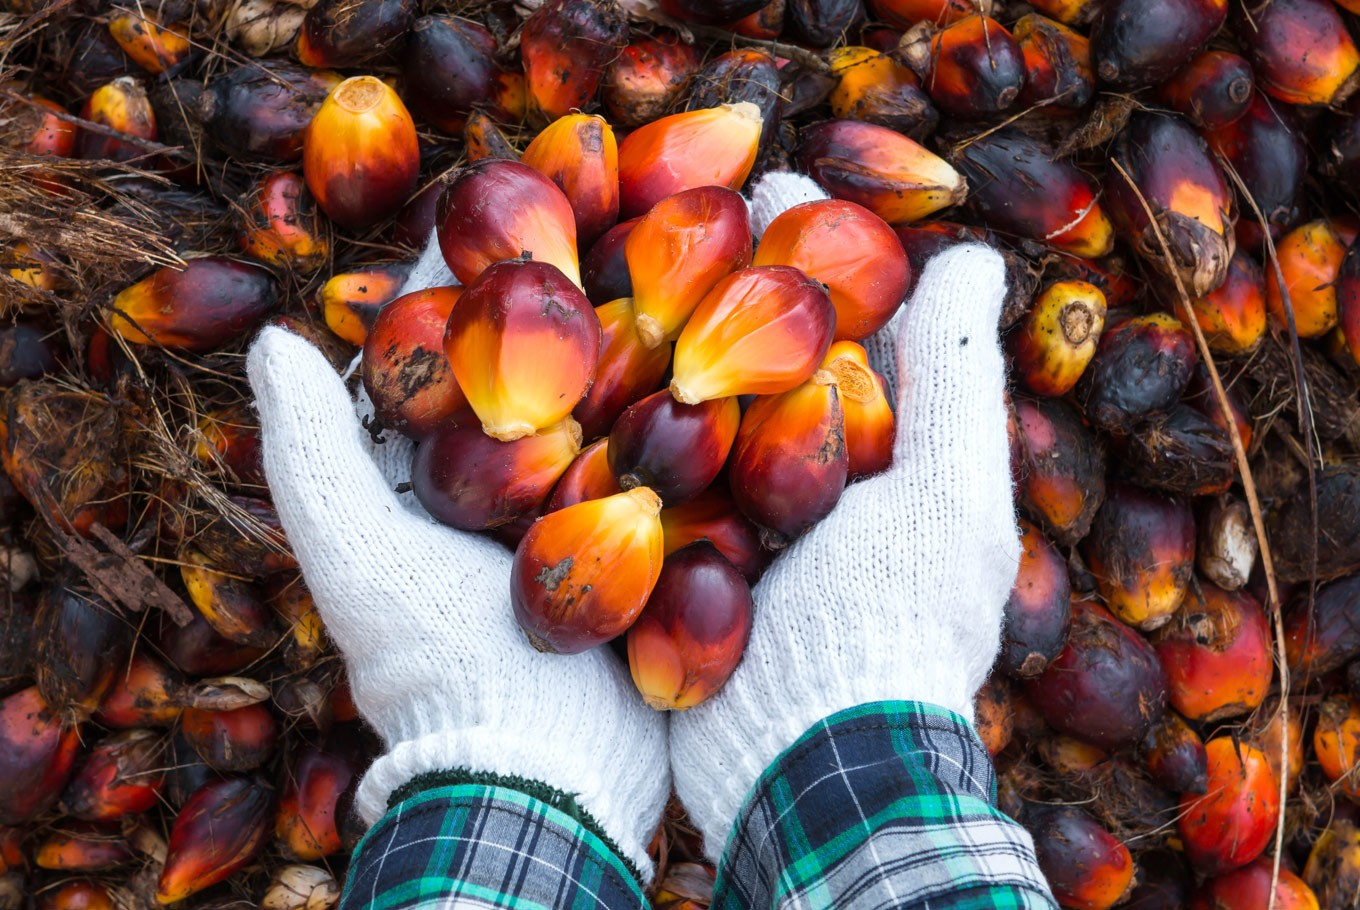 Indonesia's palm oil sector relies on domestic demand as exports drop